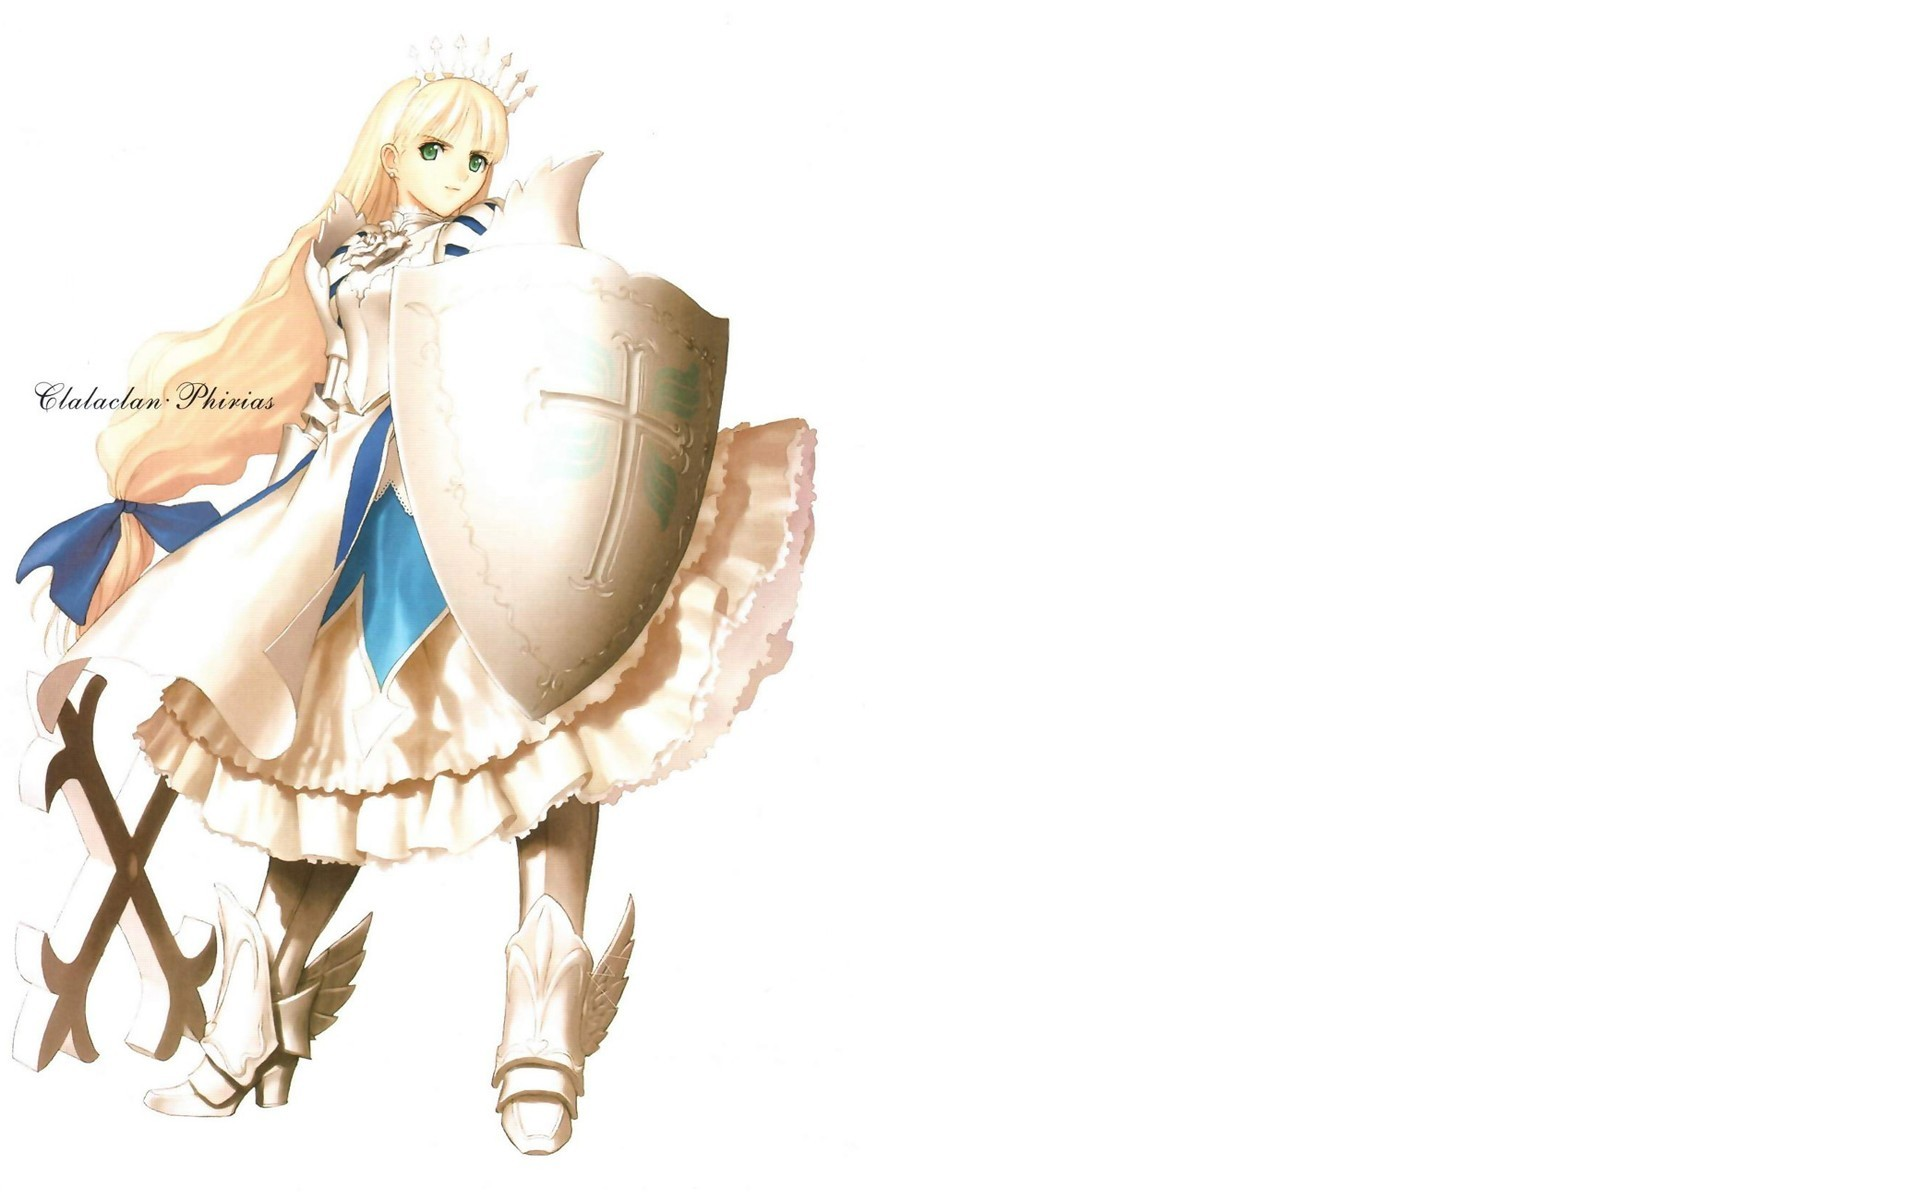 blondes tony taka Knights HD Wallpaper